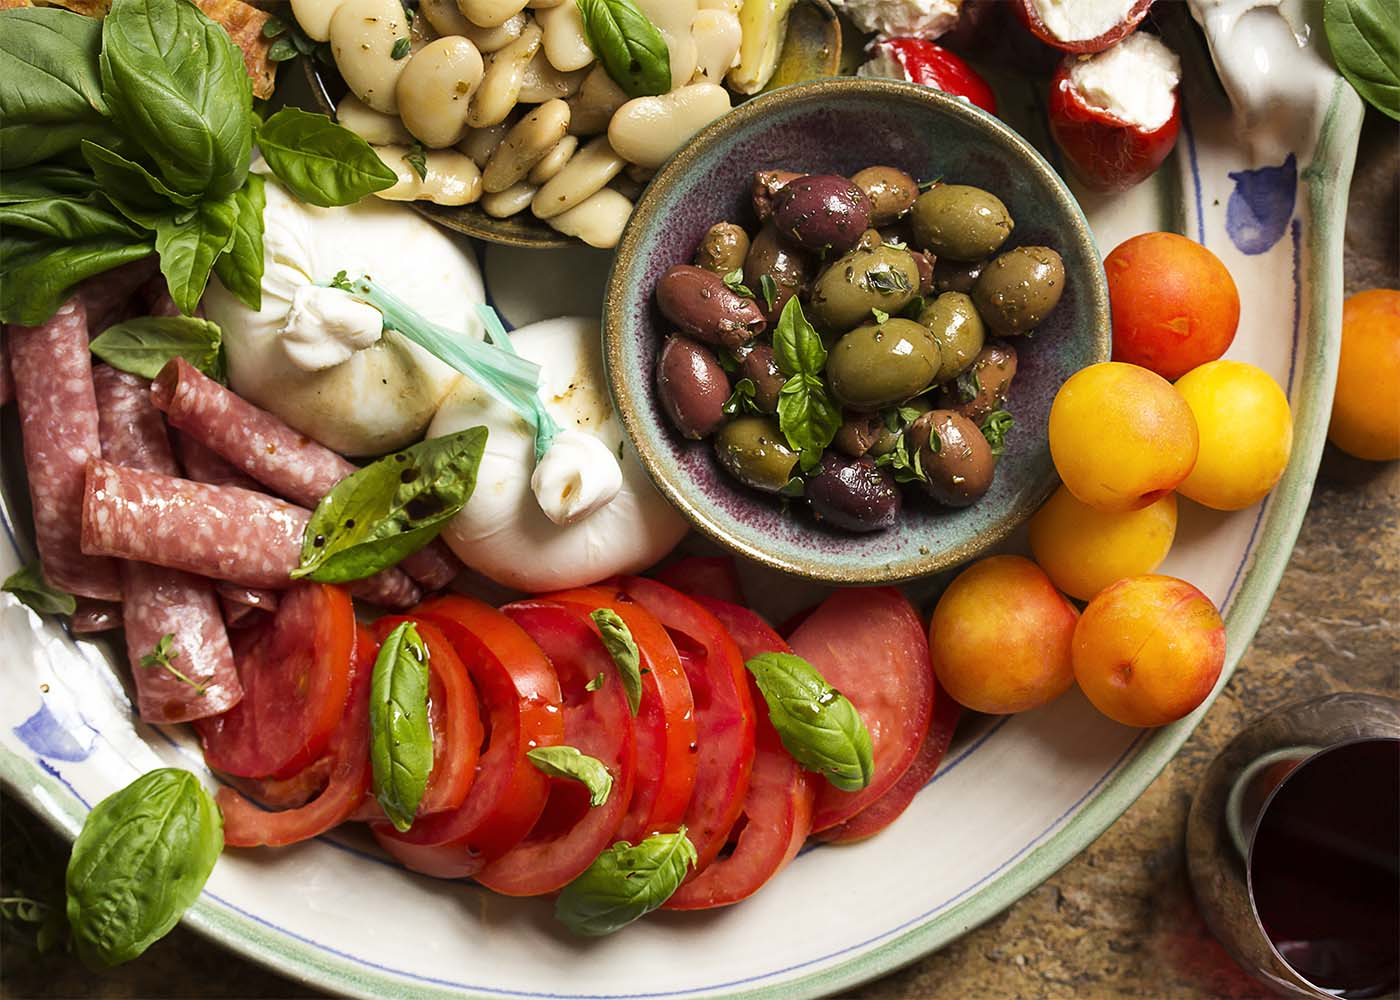 No cooking required! I love this easy Italian cold antipasto platter for summer's evenings when I want something simple for dinner. Great for two and can scale up for a crowd. | justalittlebitofbacon.com